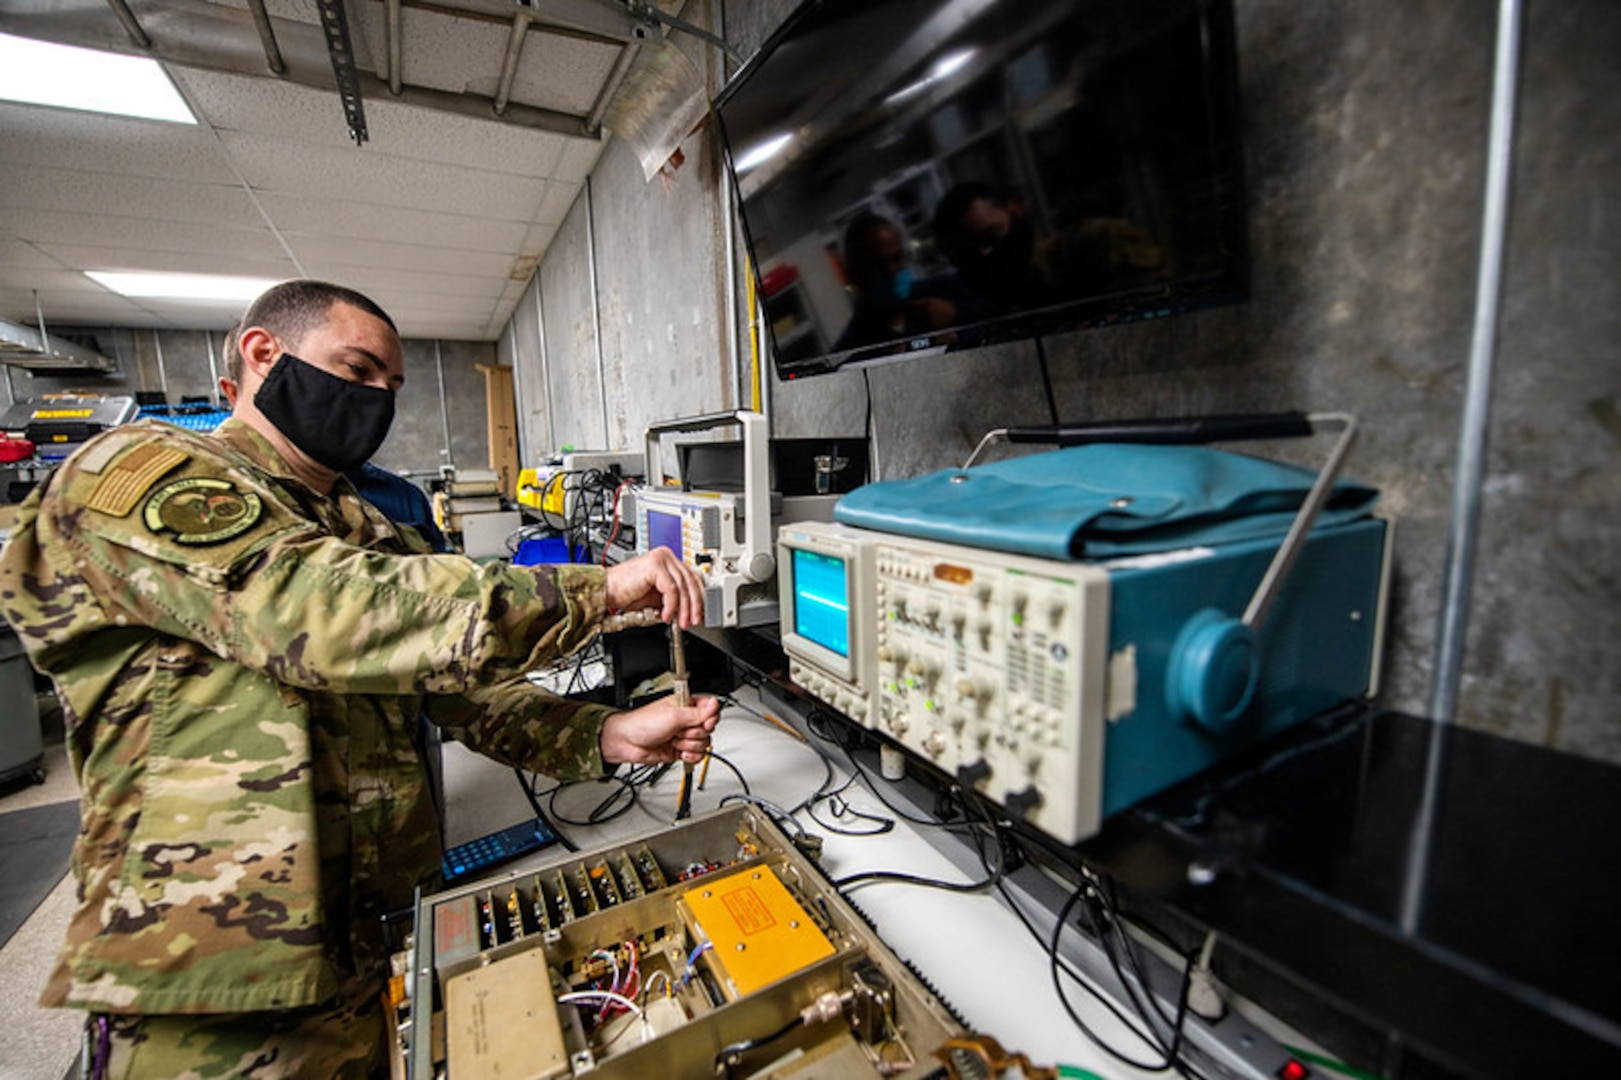 U.S. Air Force Tech. Sgt. Joel Ruiz, 502nd Operations Support Squadron airfield systems supervisor, trouble shoots radio communications equipment in support of hurricane evacuation operations during hurricane Delta Oct. 7, 2020, at Joint San Antonio-Lackland, Texas.